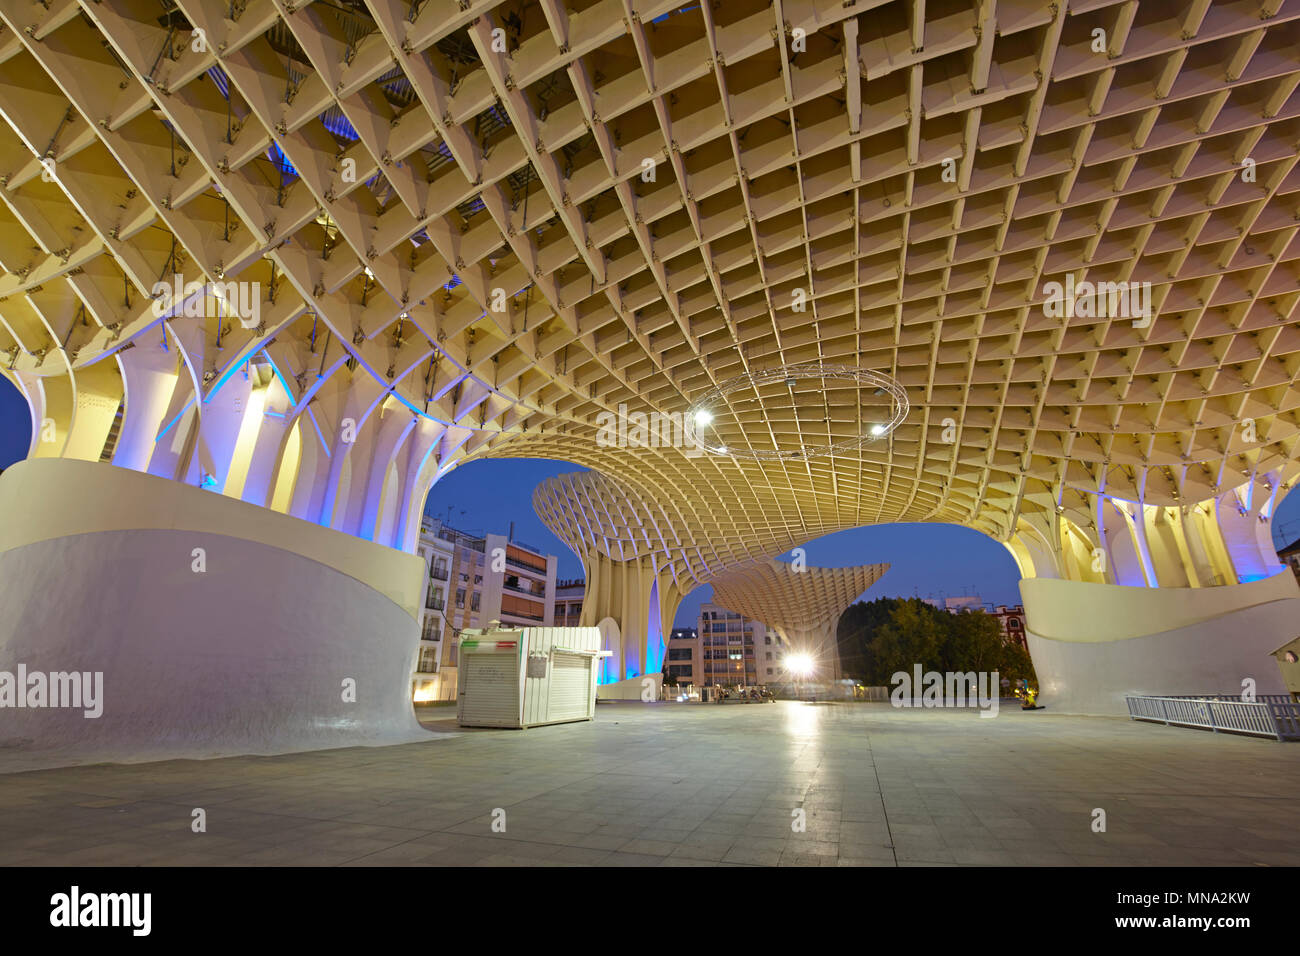 The wooden structure of the Metropol Parasol in Seville, Spain - Stock Image